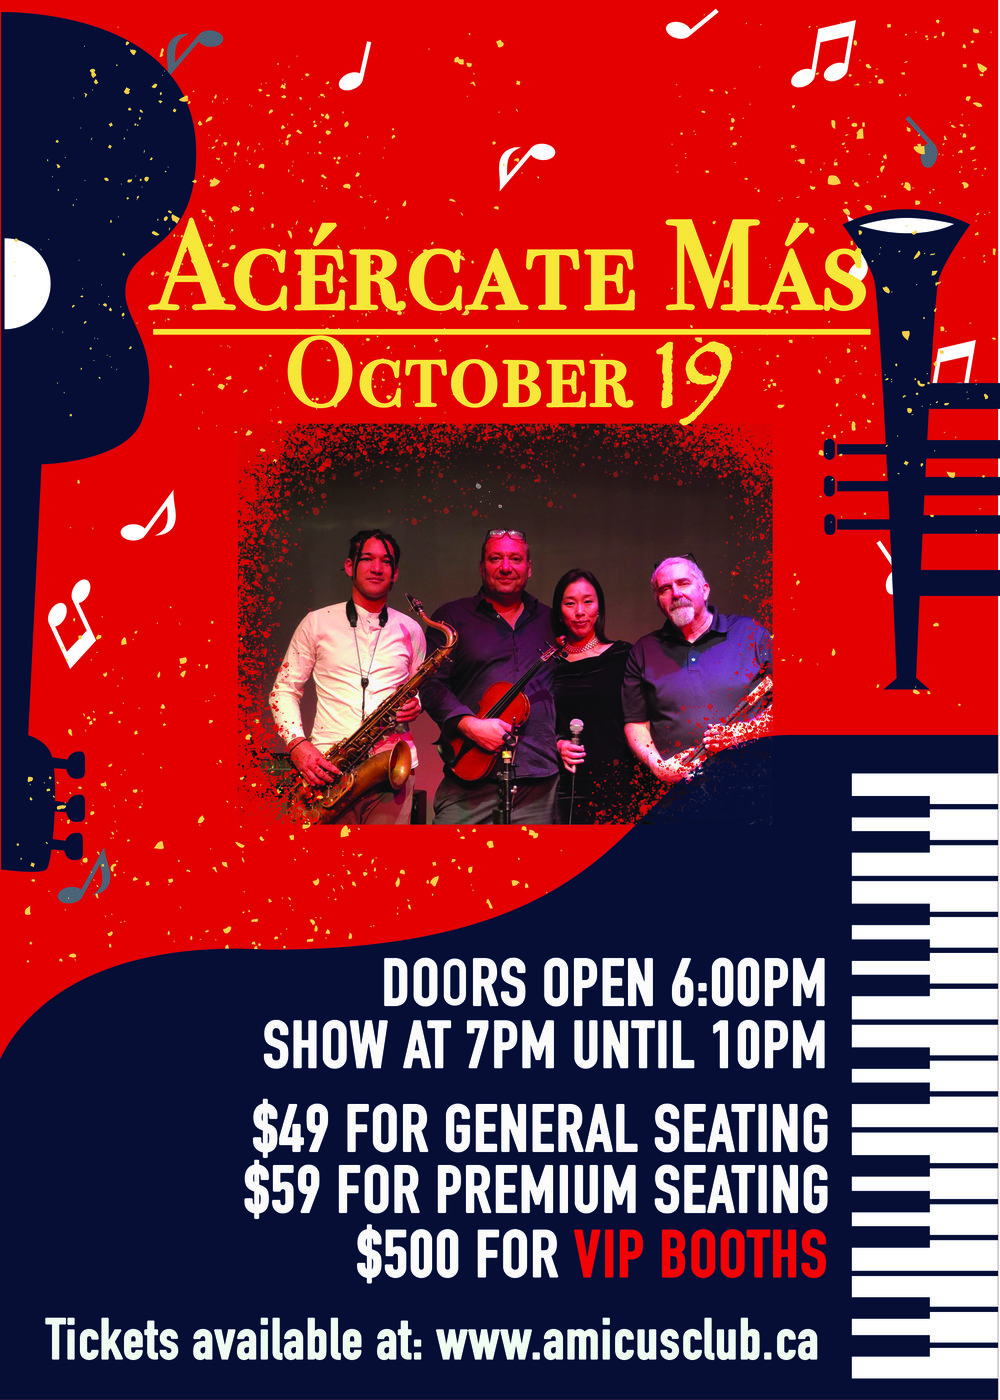 Acércate Más - Amicus Club Performing Arts presents Acércate Más at The Columbia this Friday, October 19th 2018.Join us at our newly renovated Amicus Club for an evening of jazz with influences from all over the world.Acércate Más band and its talented members bring you an unforgettable and eclectic music experience.Masumi's rich vocals take you to another world of unique blend of jazz, while Lamar Alviar, Jorah Kauffman and Barry Baldwin provide the complex instrumental atmosphere.Purchase Tickets below